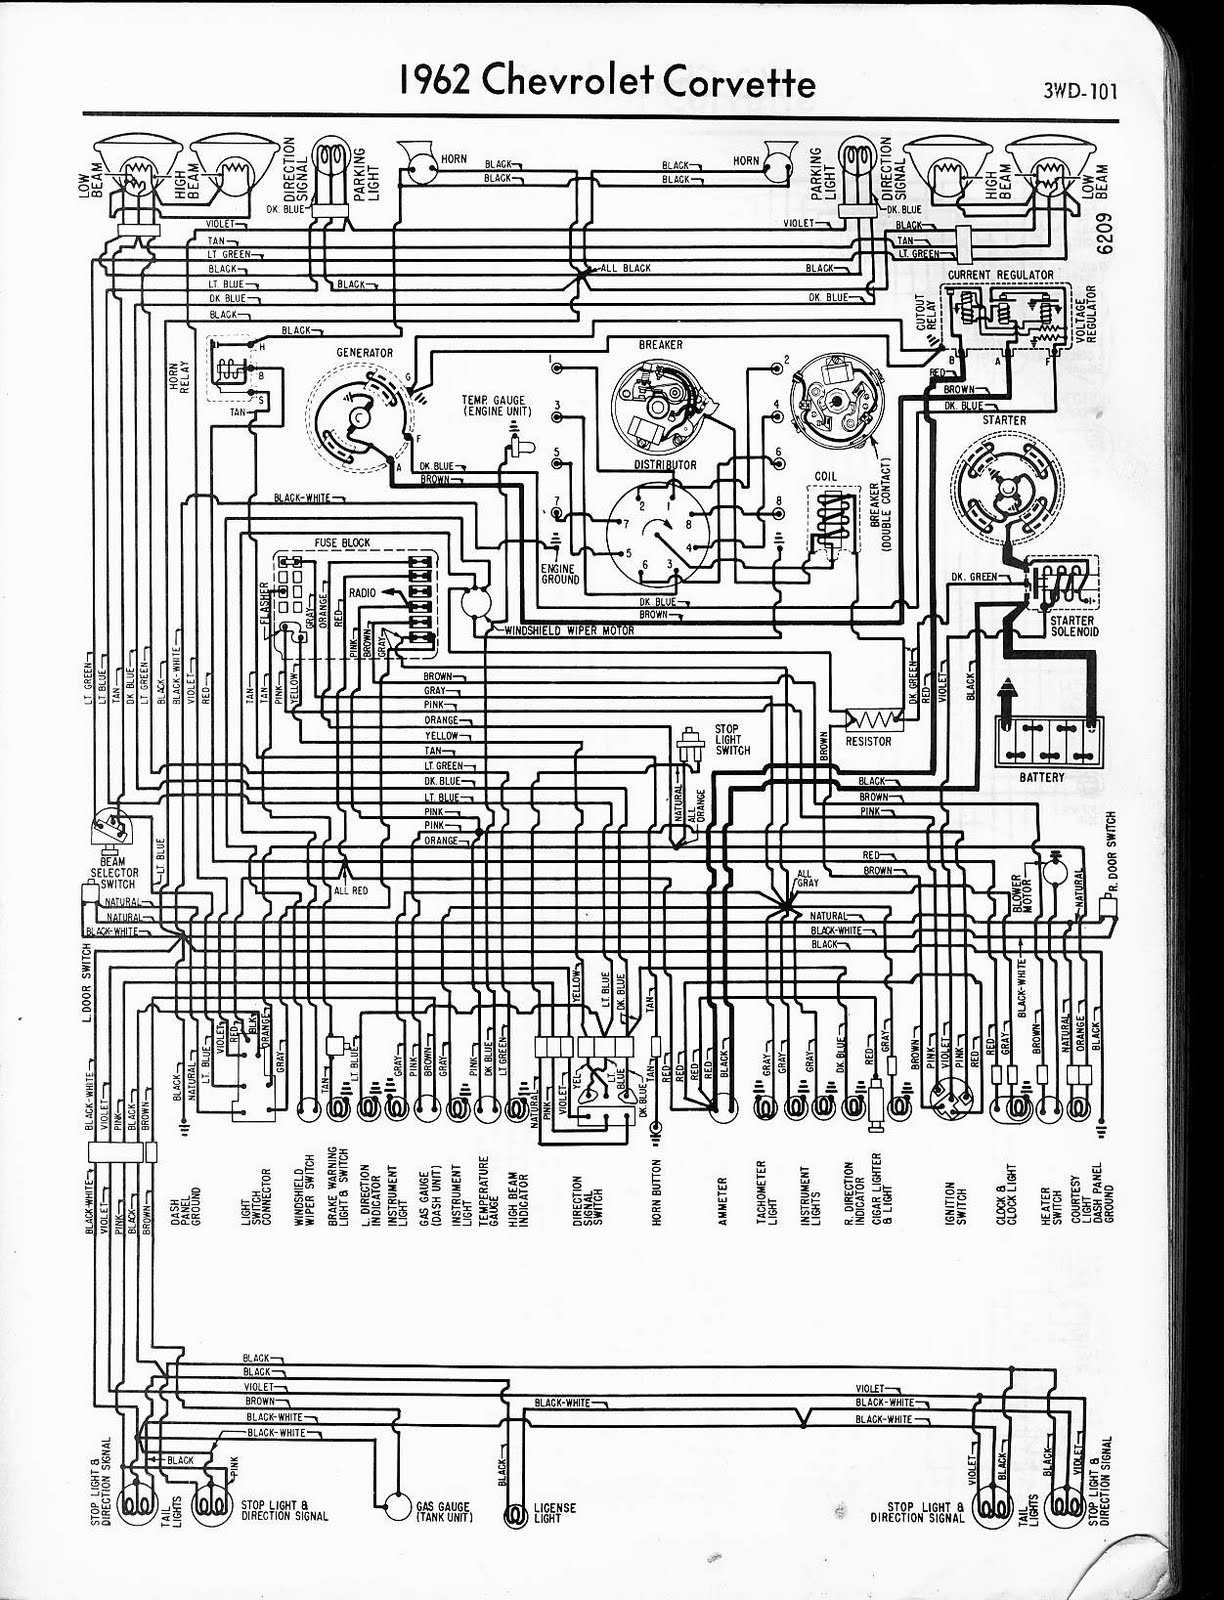 Wiring Diagram Electrical Panel Simple Guide About Line Symbols Free Auto 1962 Chevrolet Corvette For